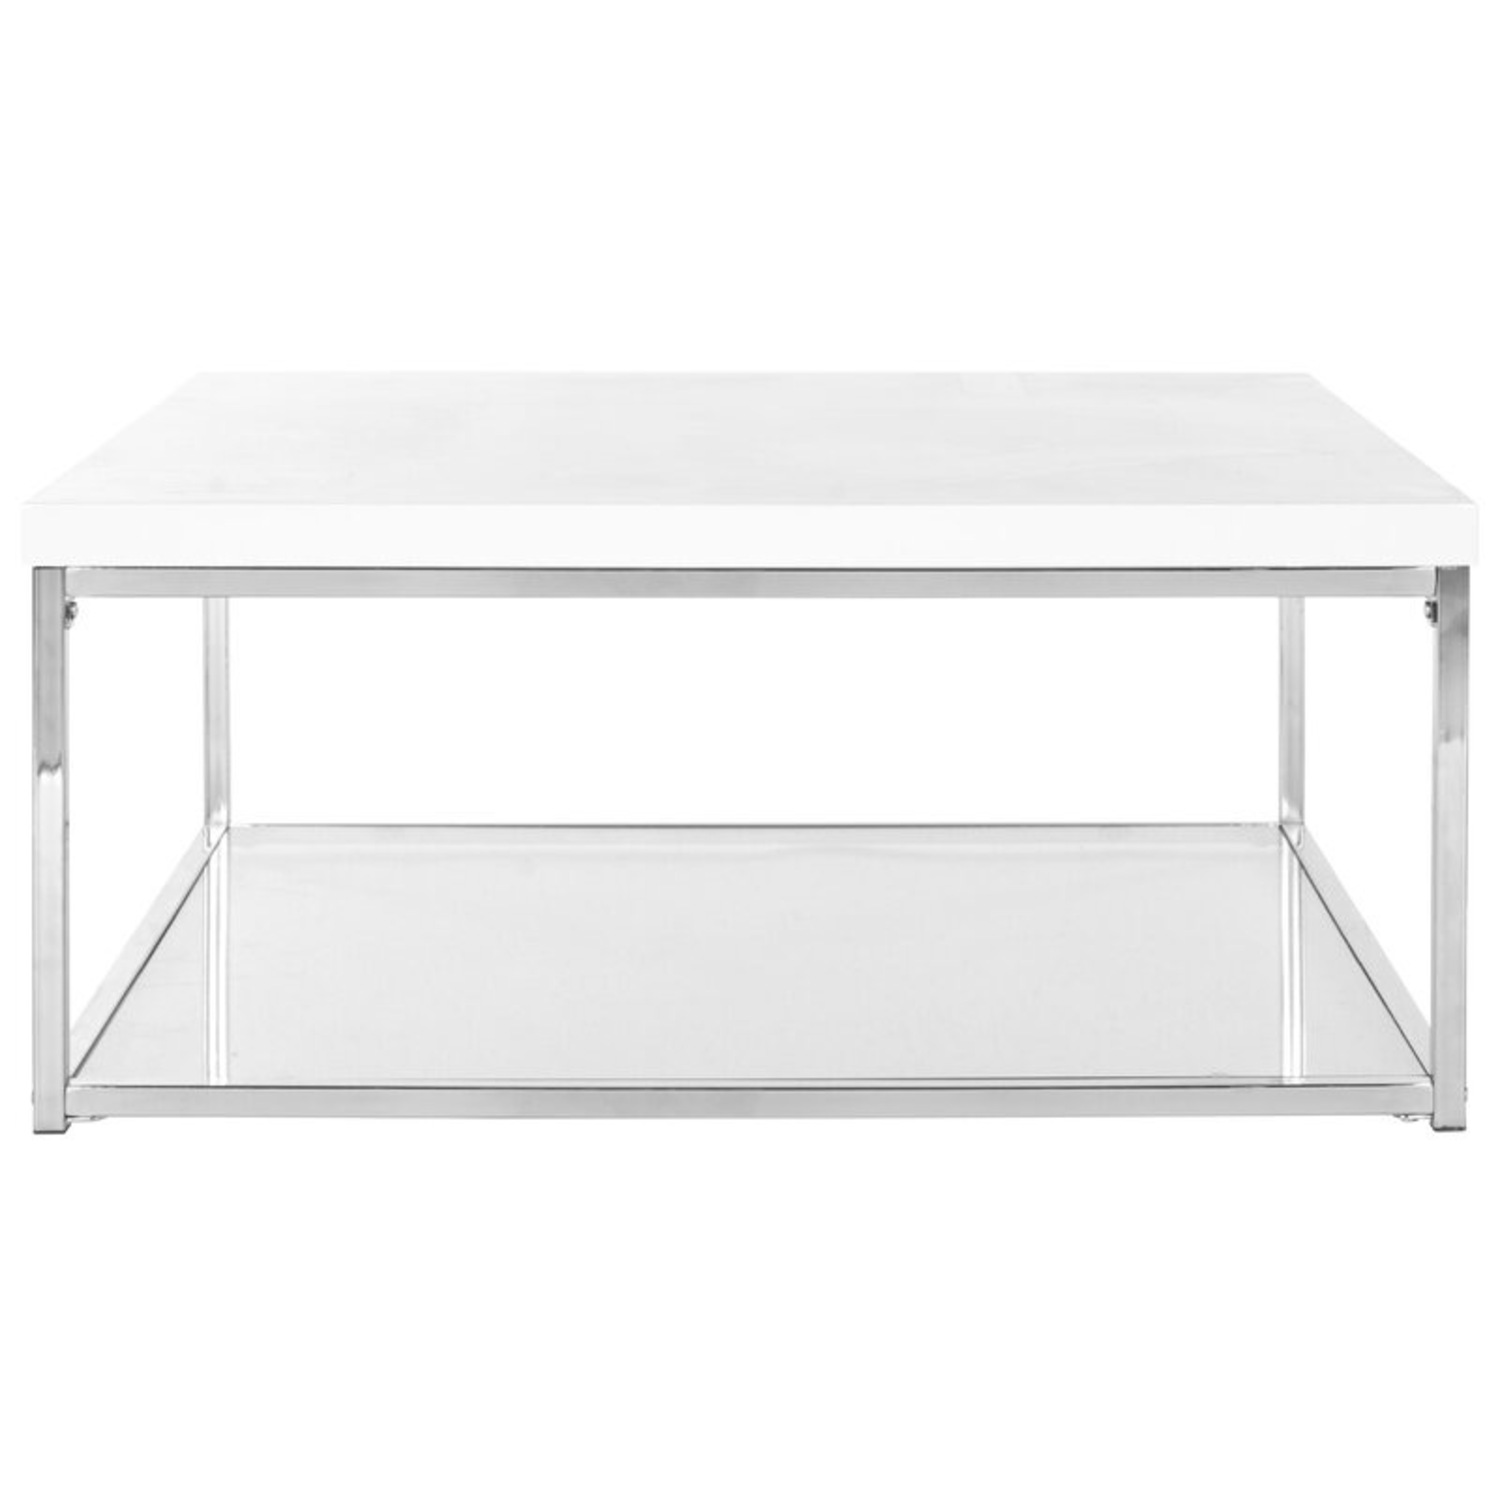 Modern Floor Coffee Table with Storage - image-2